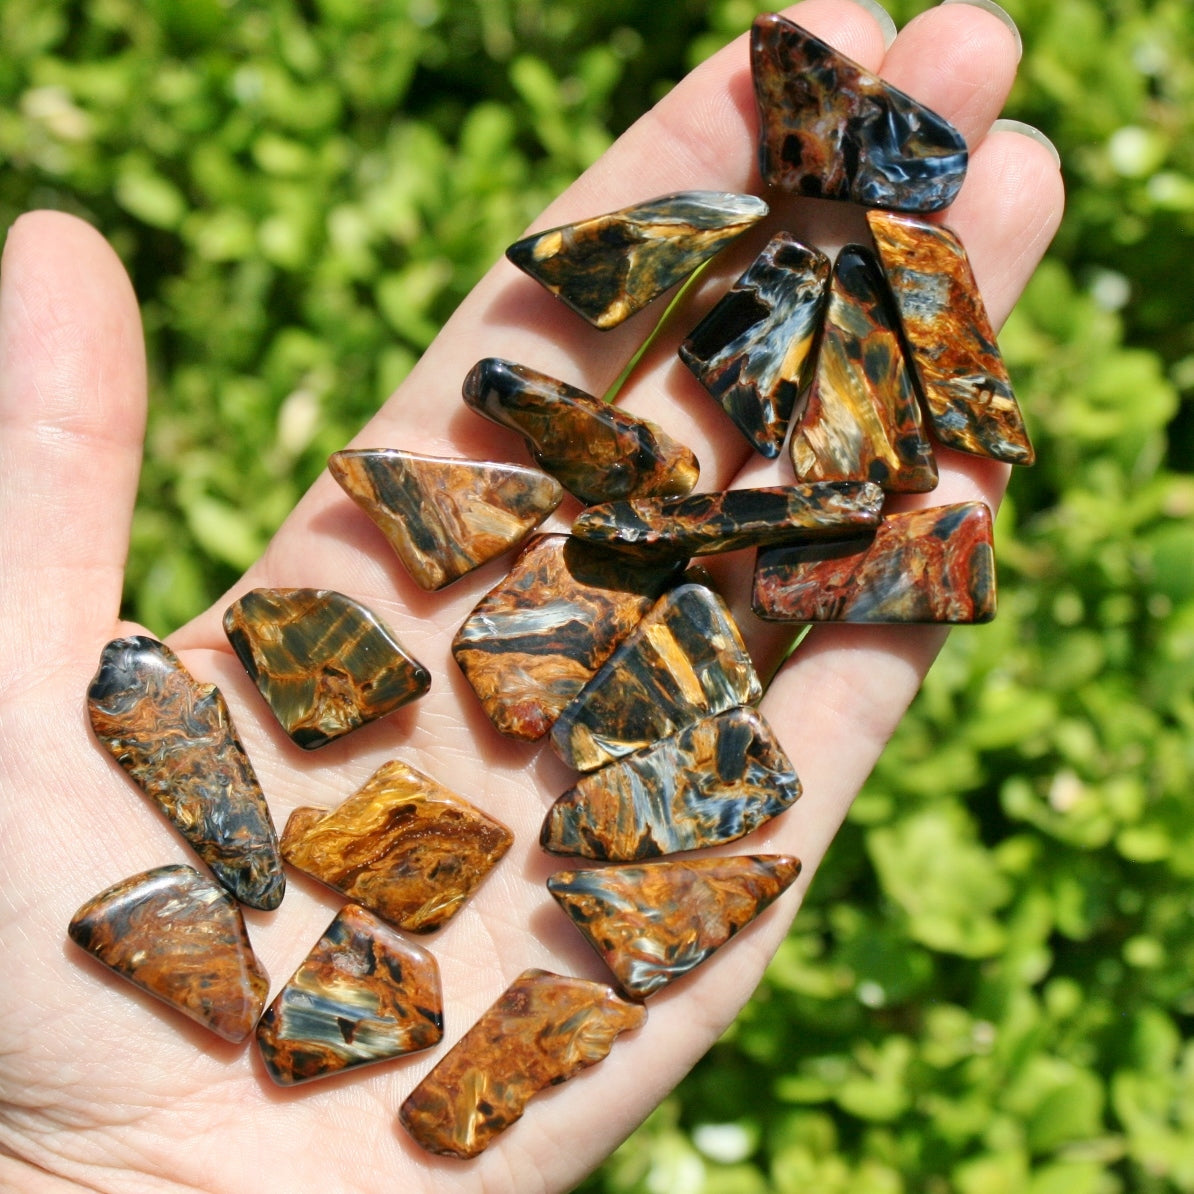 ONE Pietersite Chatoyant Tumbled Stones from Namibia, 2.5 - 3.5 grams each